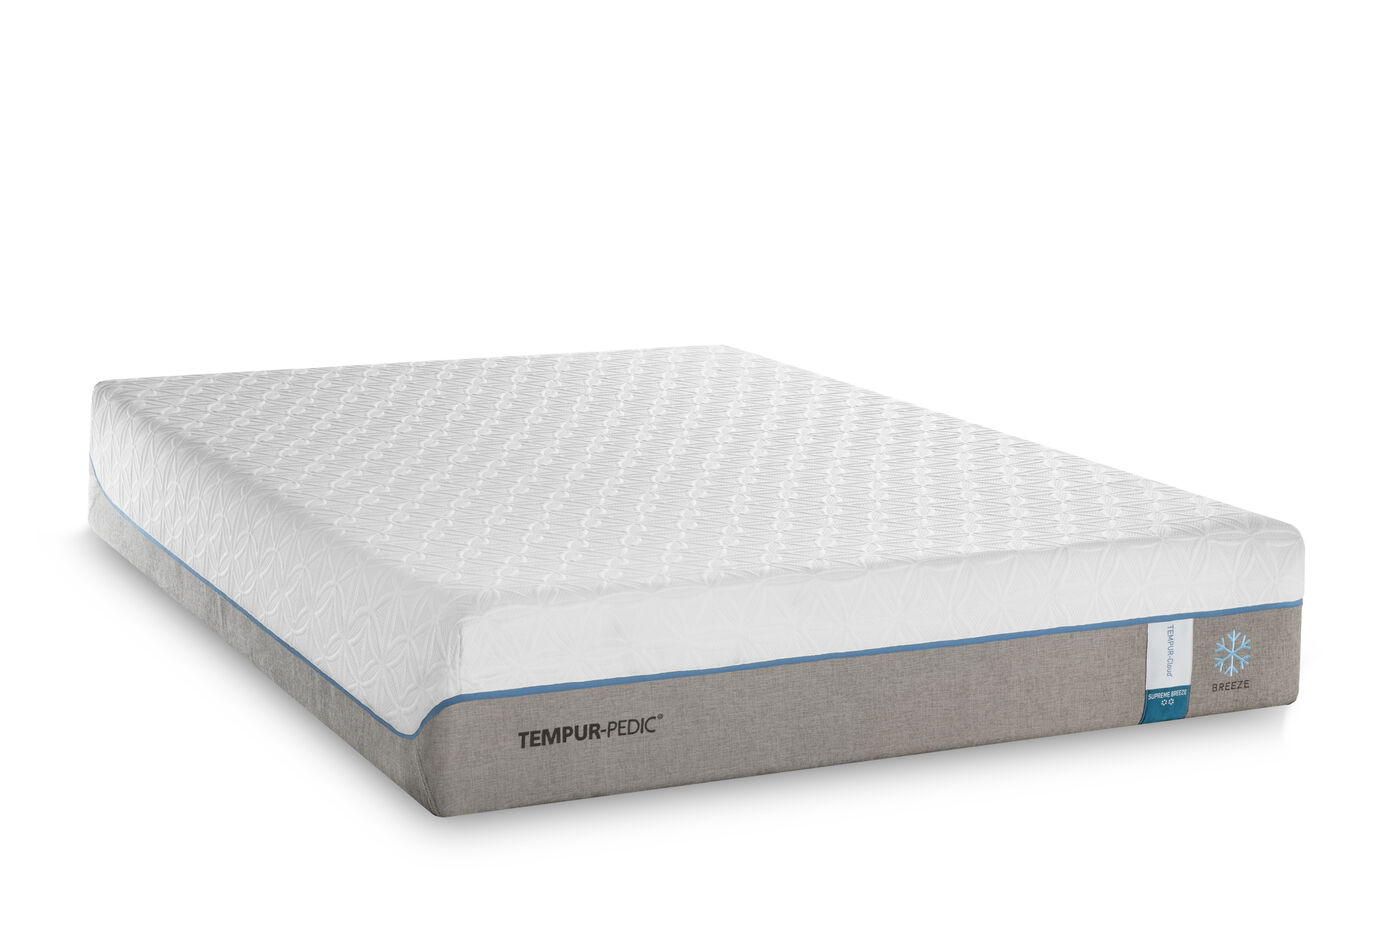 Tempur Pedic Breeze Mattress Mathis Brothers